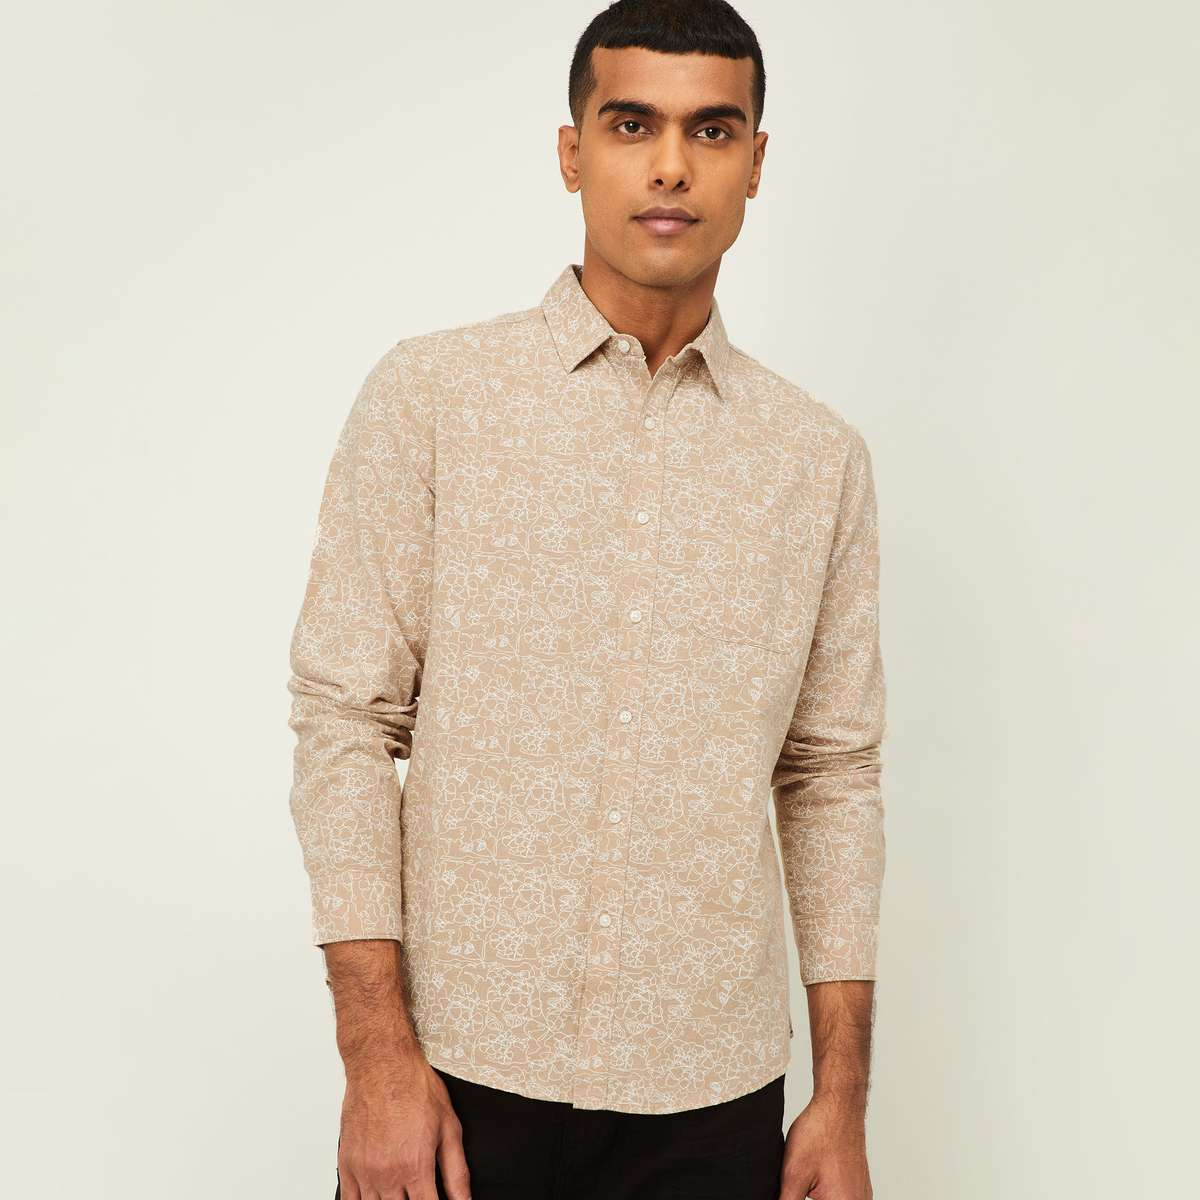 4.DENIMIZE Men Printed Regular Fit Casual Shirt